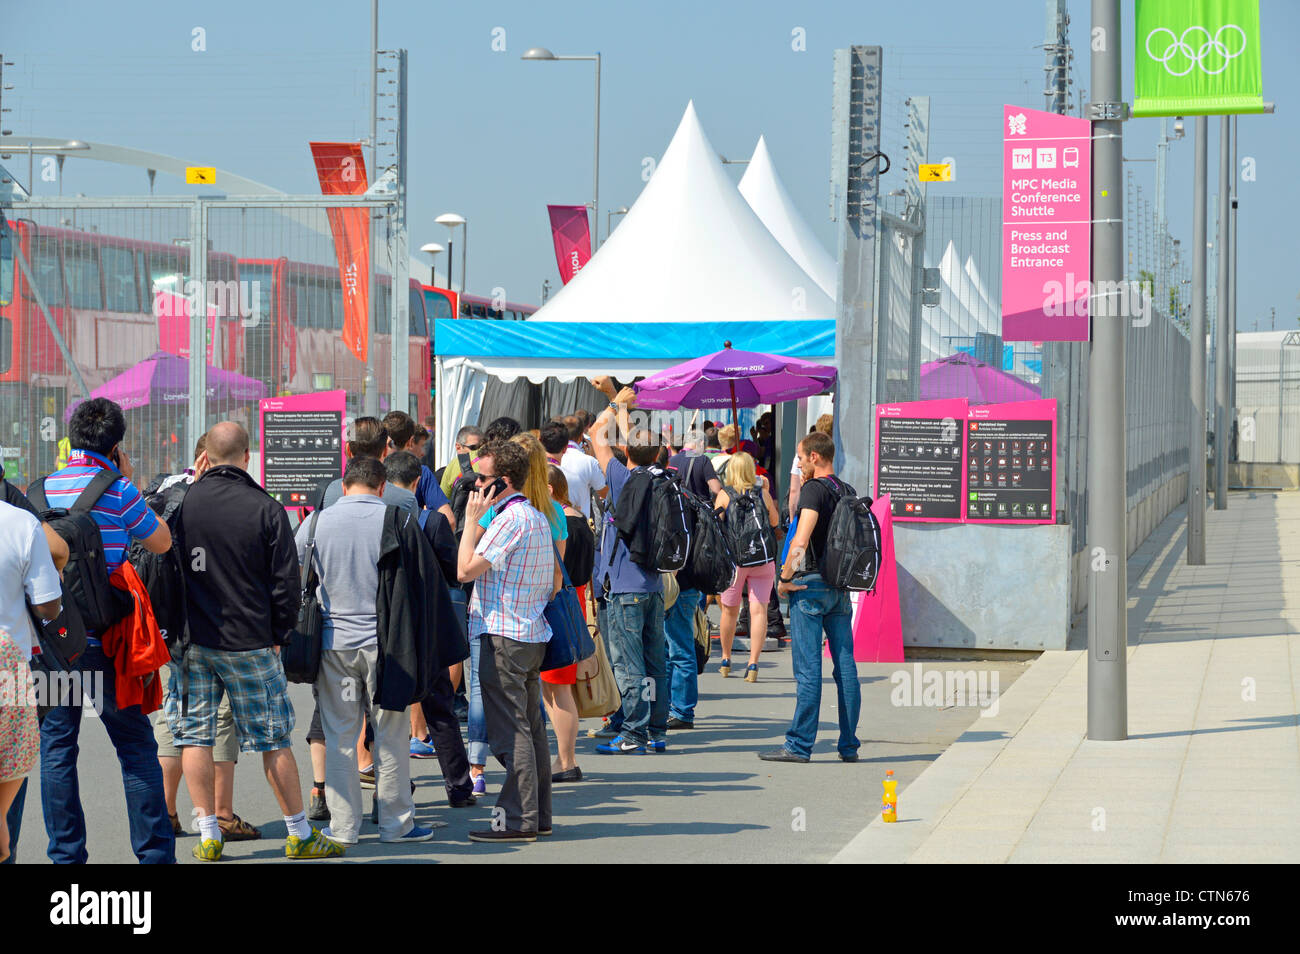 Queue at security check in entry point for media press & broadcasters at London 2012 Olympic Park EDITORIAL USE Stock Photo